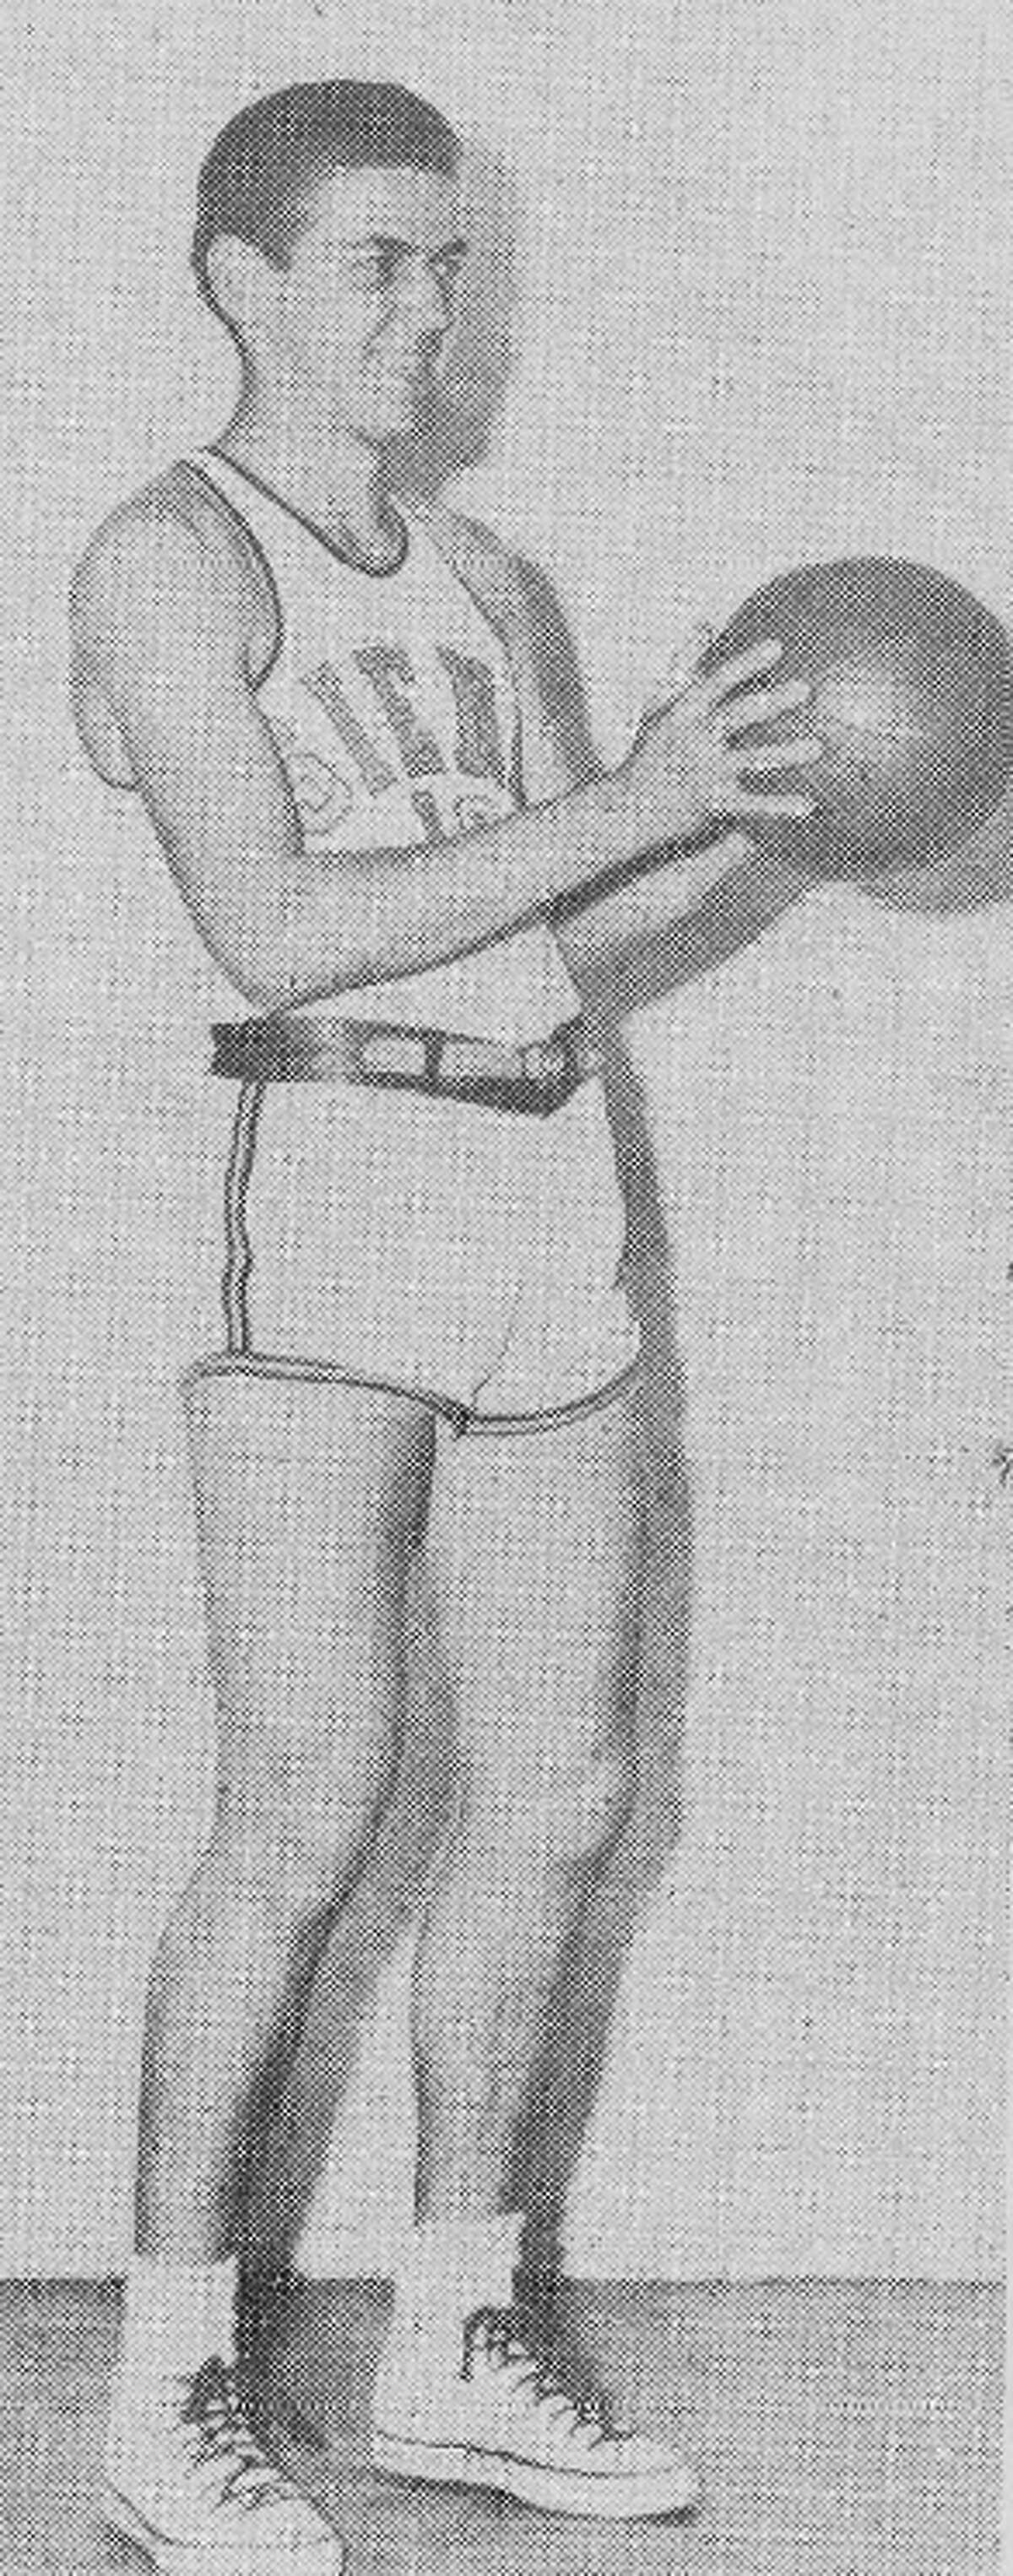 Ed Kolakowski, who lives in Brant Lake, was part of Siena basketball teams that won 16 consecutive games over the 1949-50 and 1950-51 seasons. (Siena athletic communications)